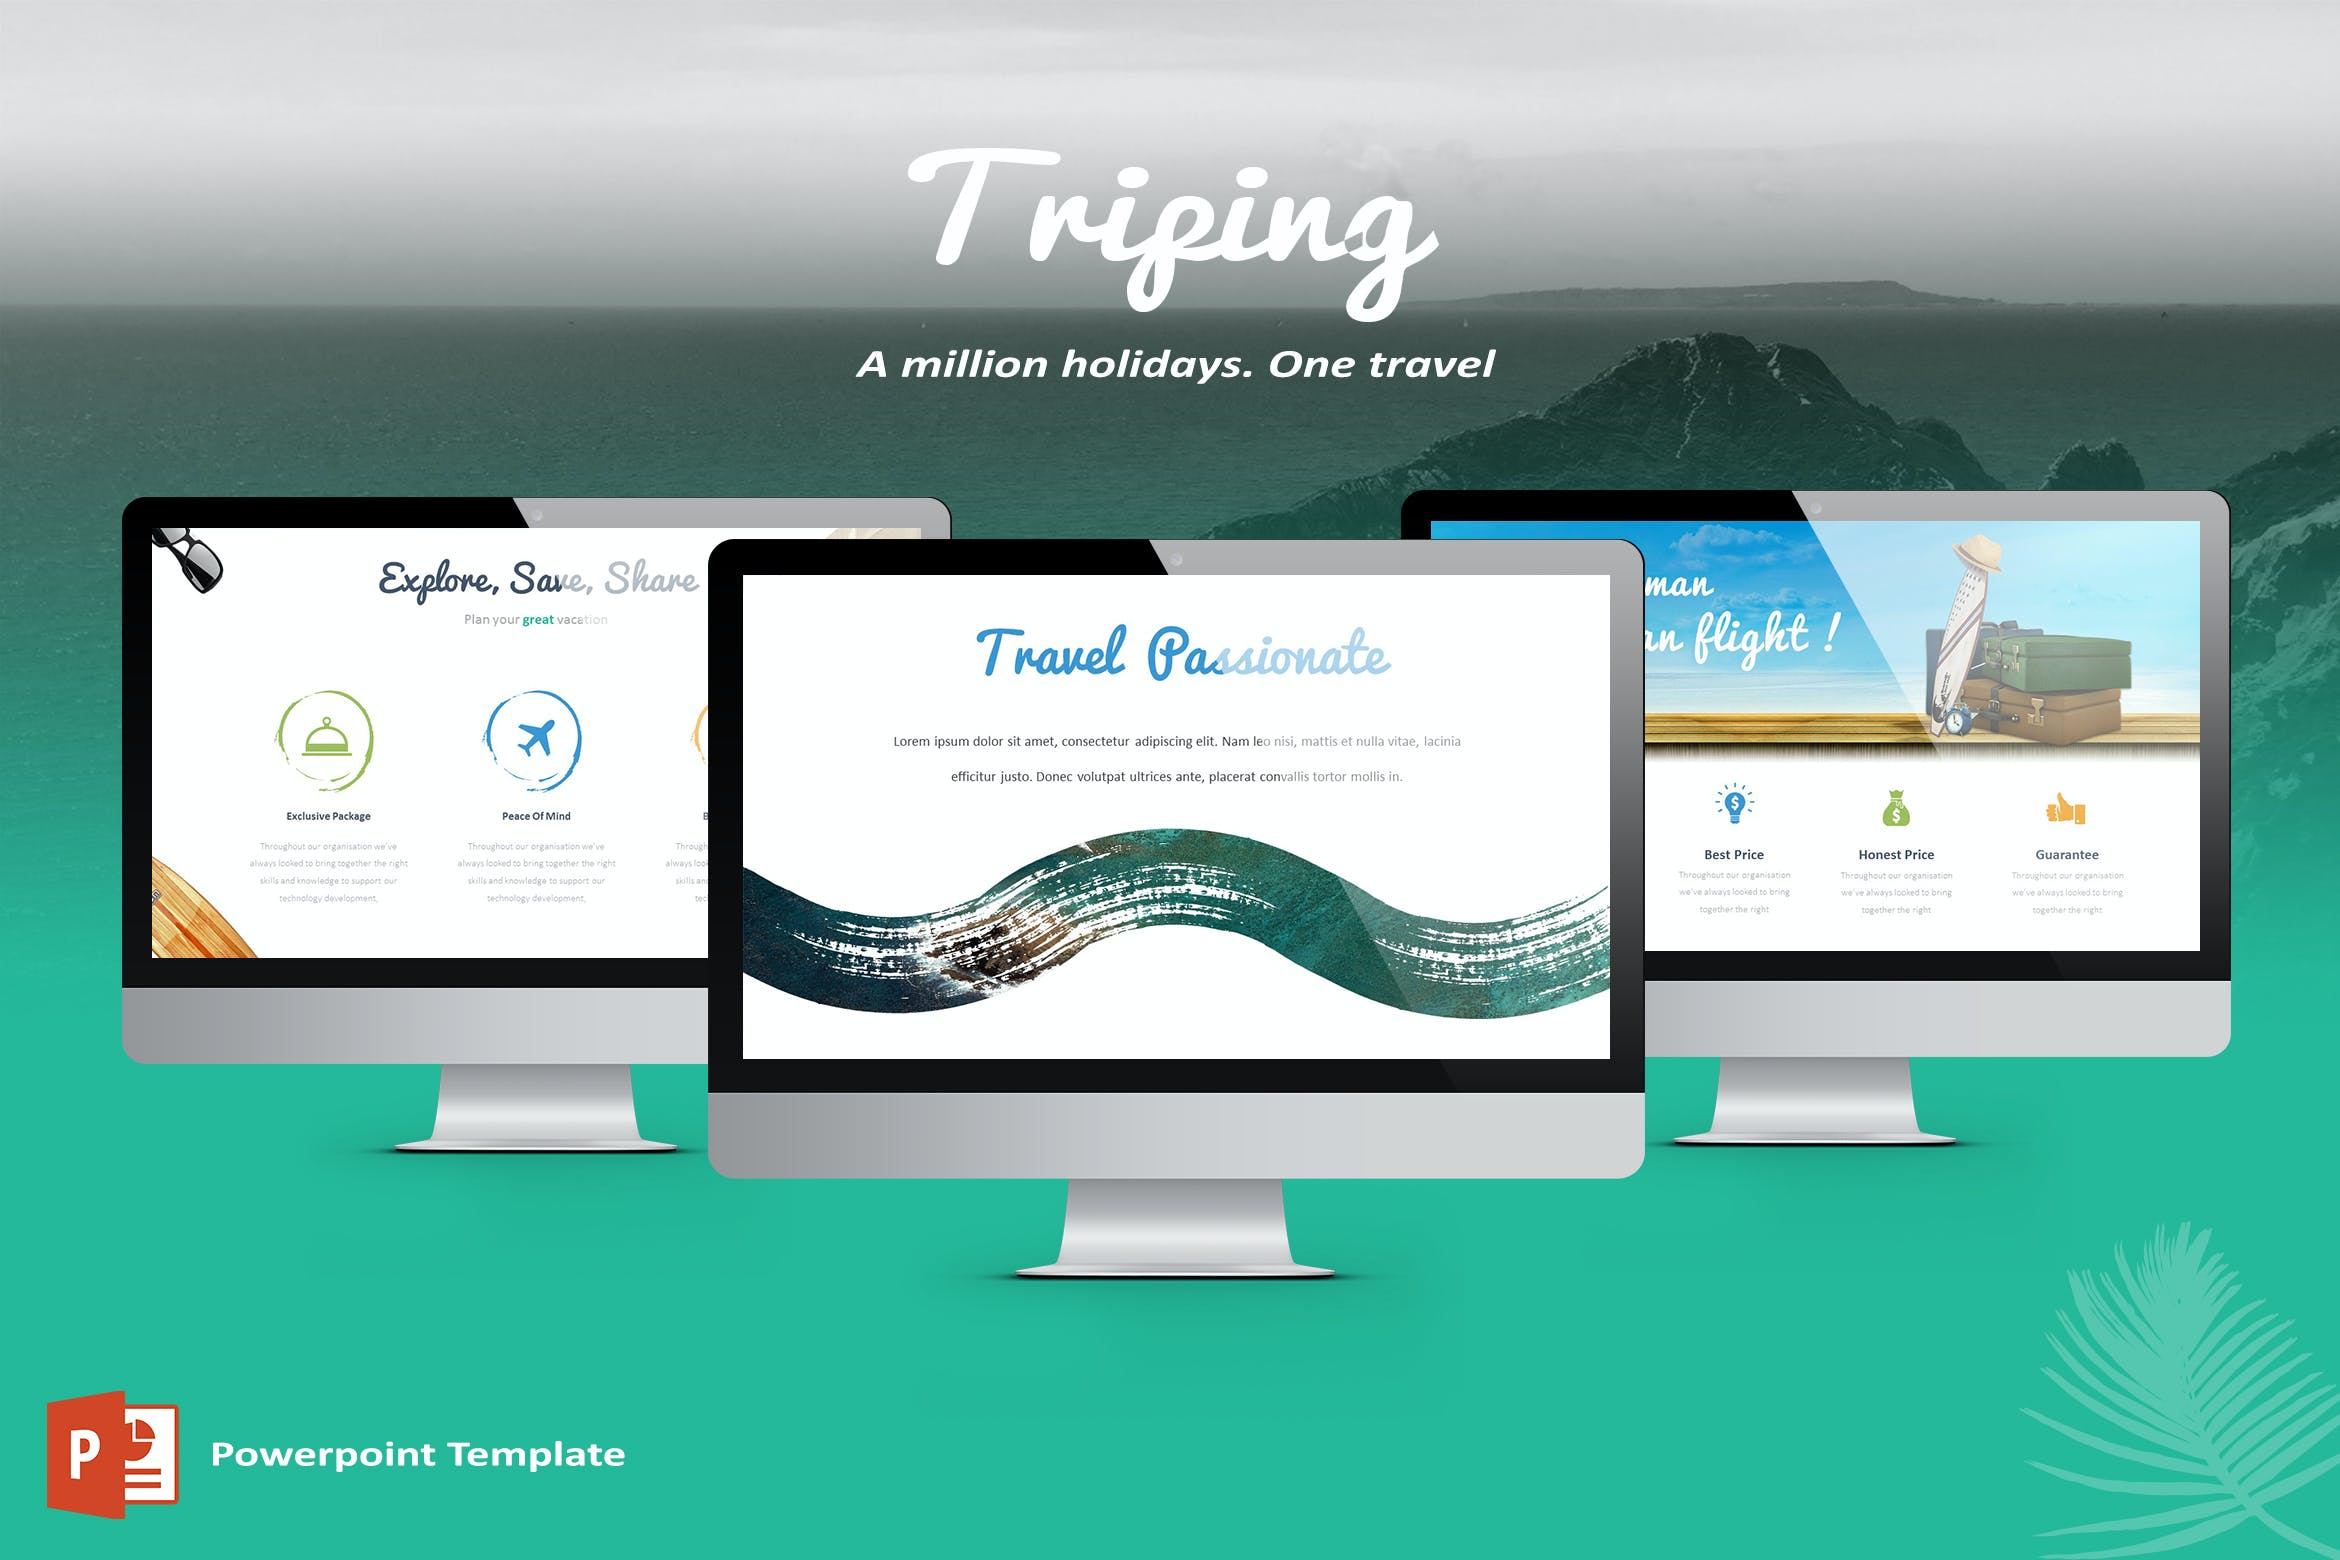 Triping Travel Powerpoint Template By Inspirasign On Envato Elements